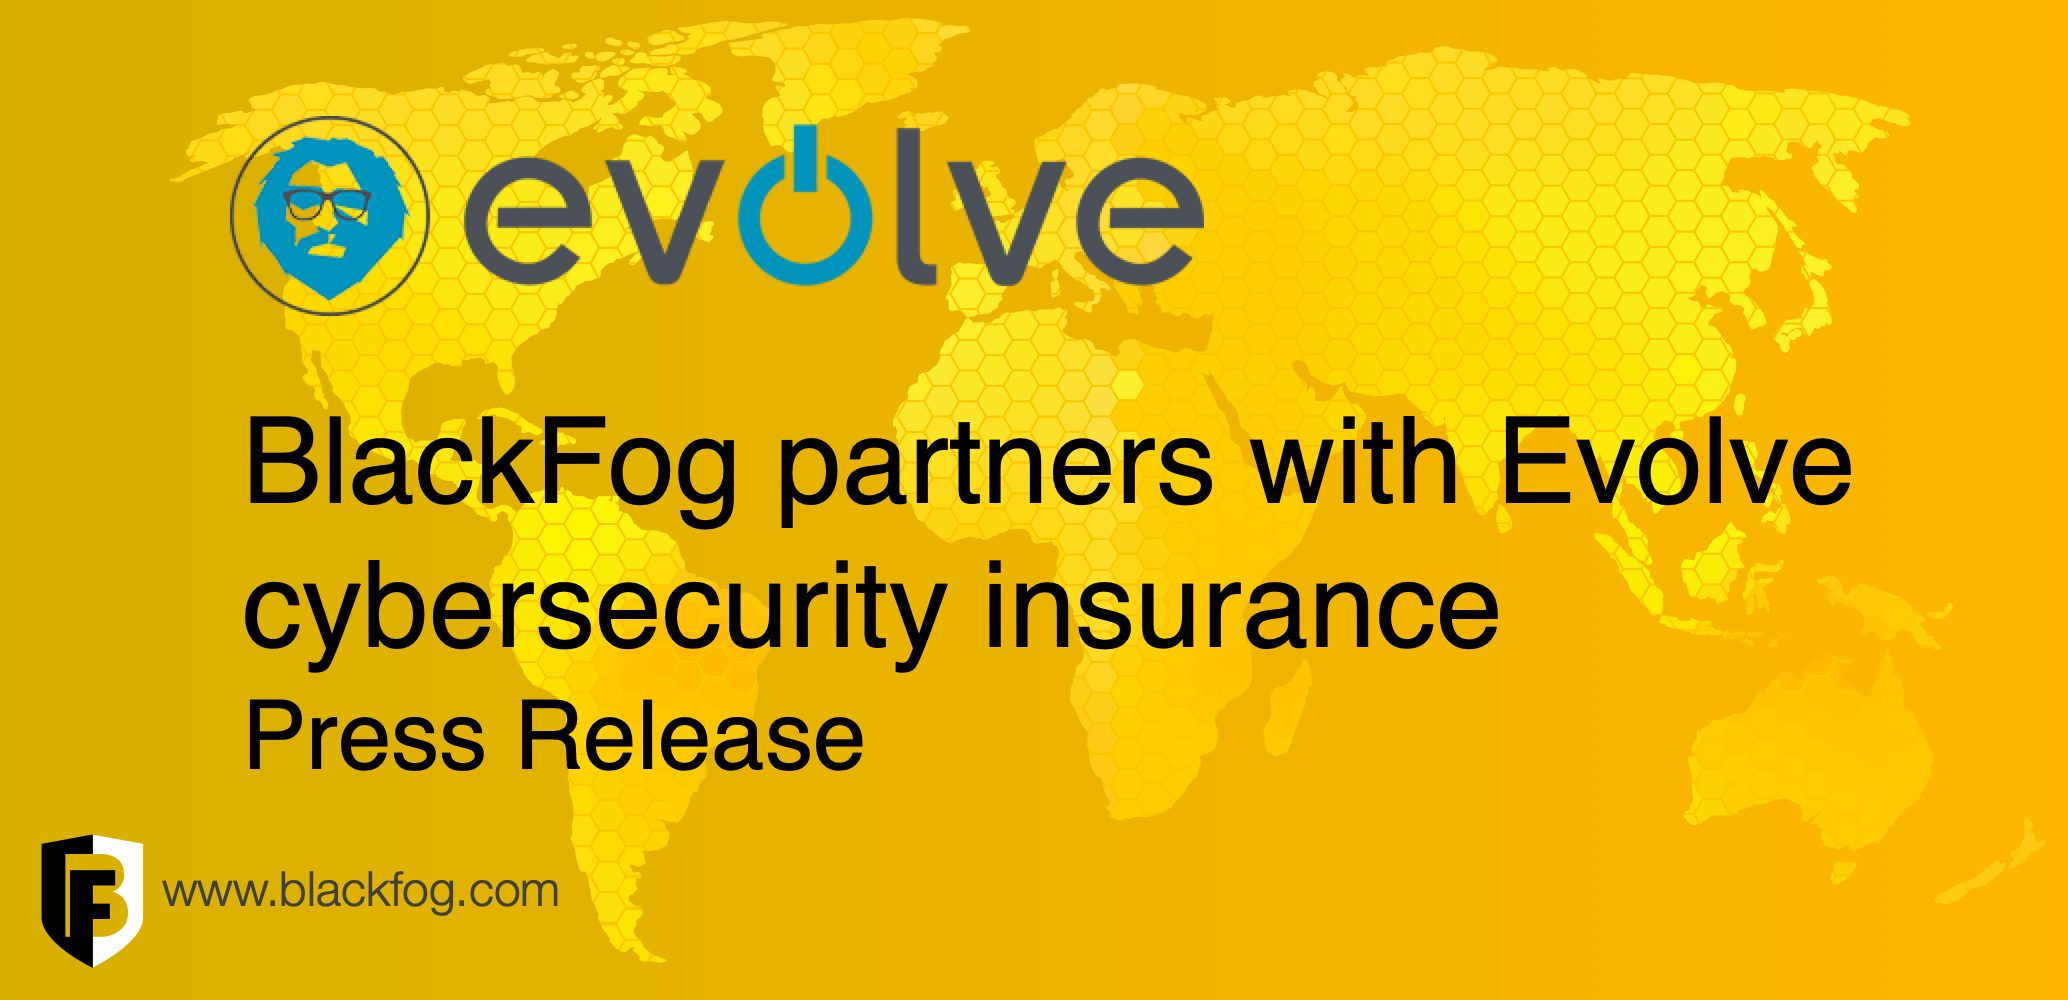 BlackFog Partners with Evolve Cybersecurity Insurance for Ransomware Protection